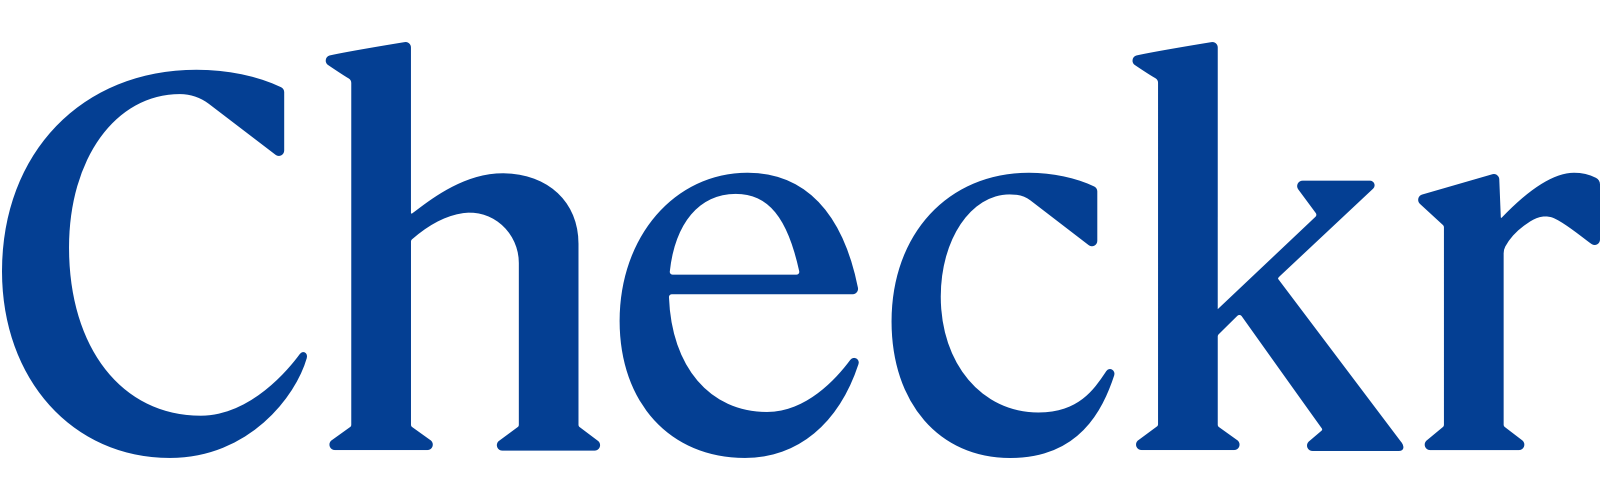 checkr-logo